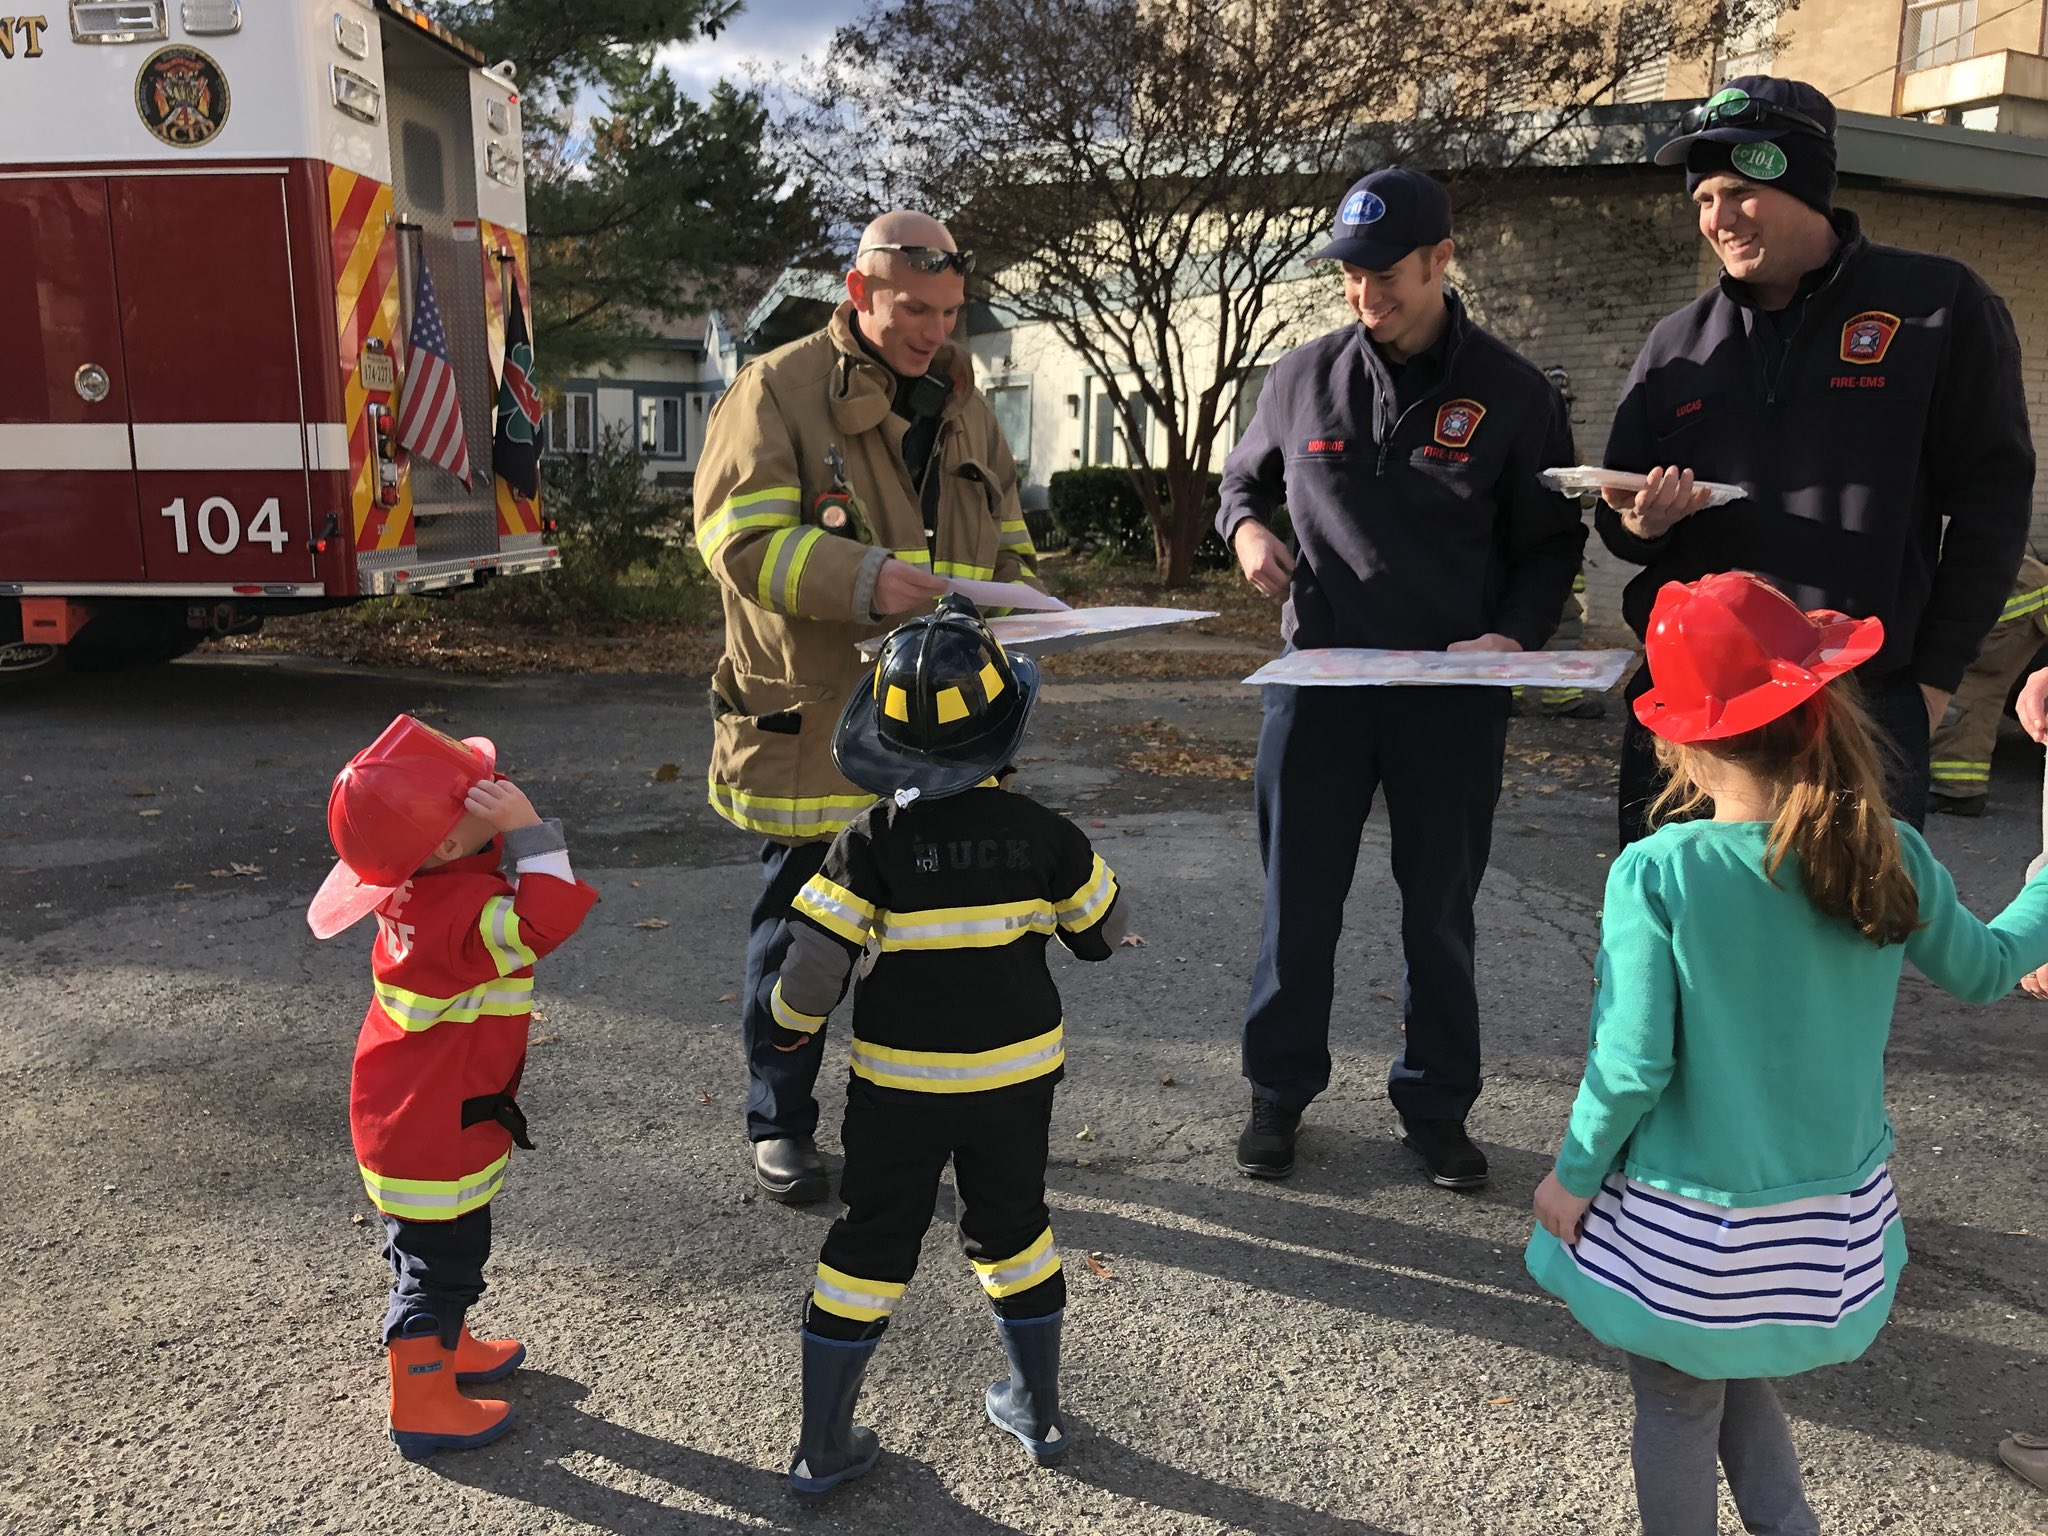 Kids got to meet some real superheroes today at Fire Station 4. Thankful for all our first responders. https://t.co/UWb3gYMrBP